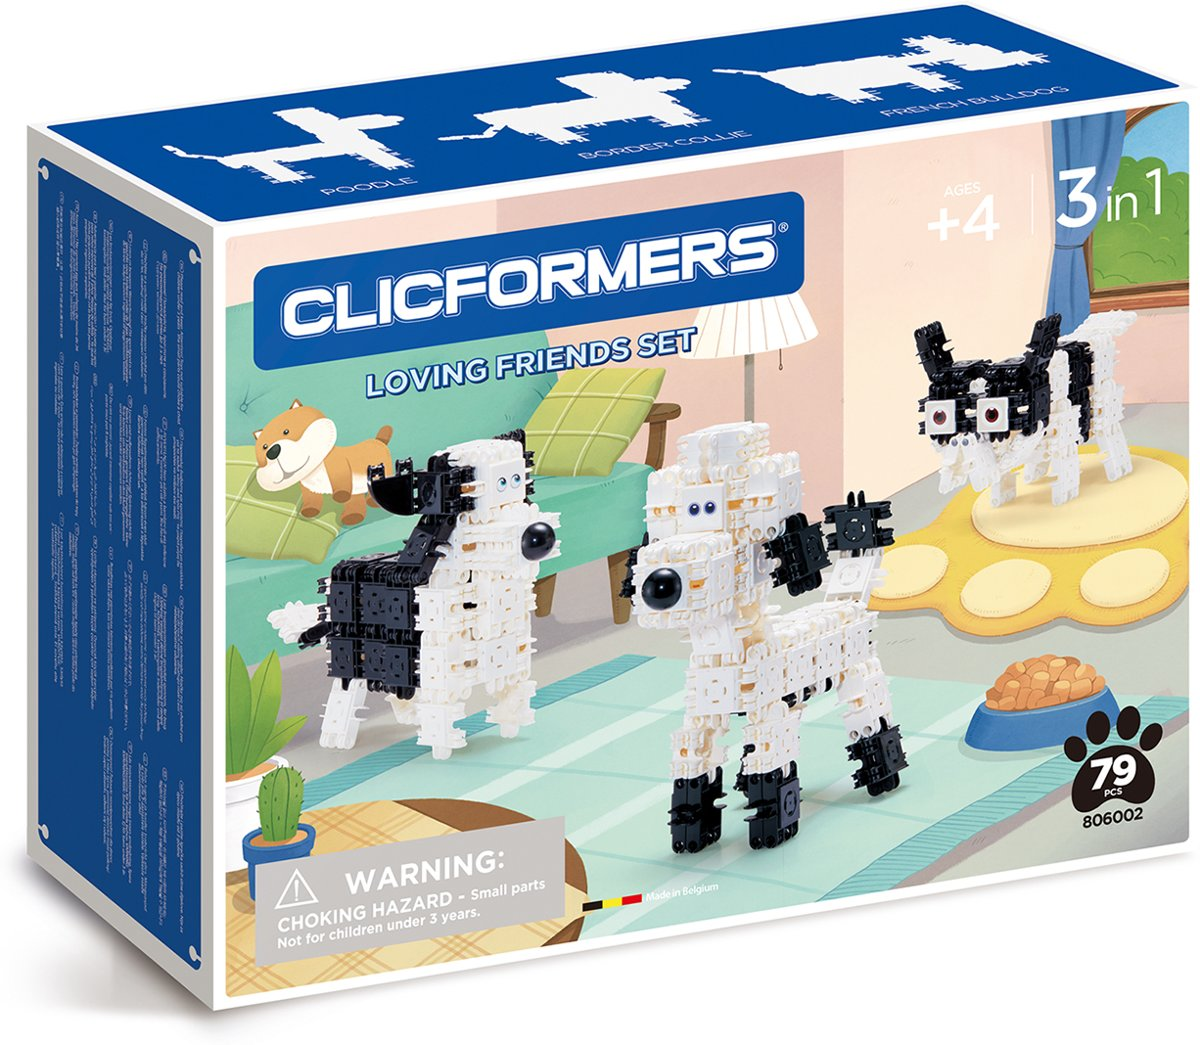 Clicformers - Loving Friends Set - 79 pcs